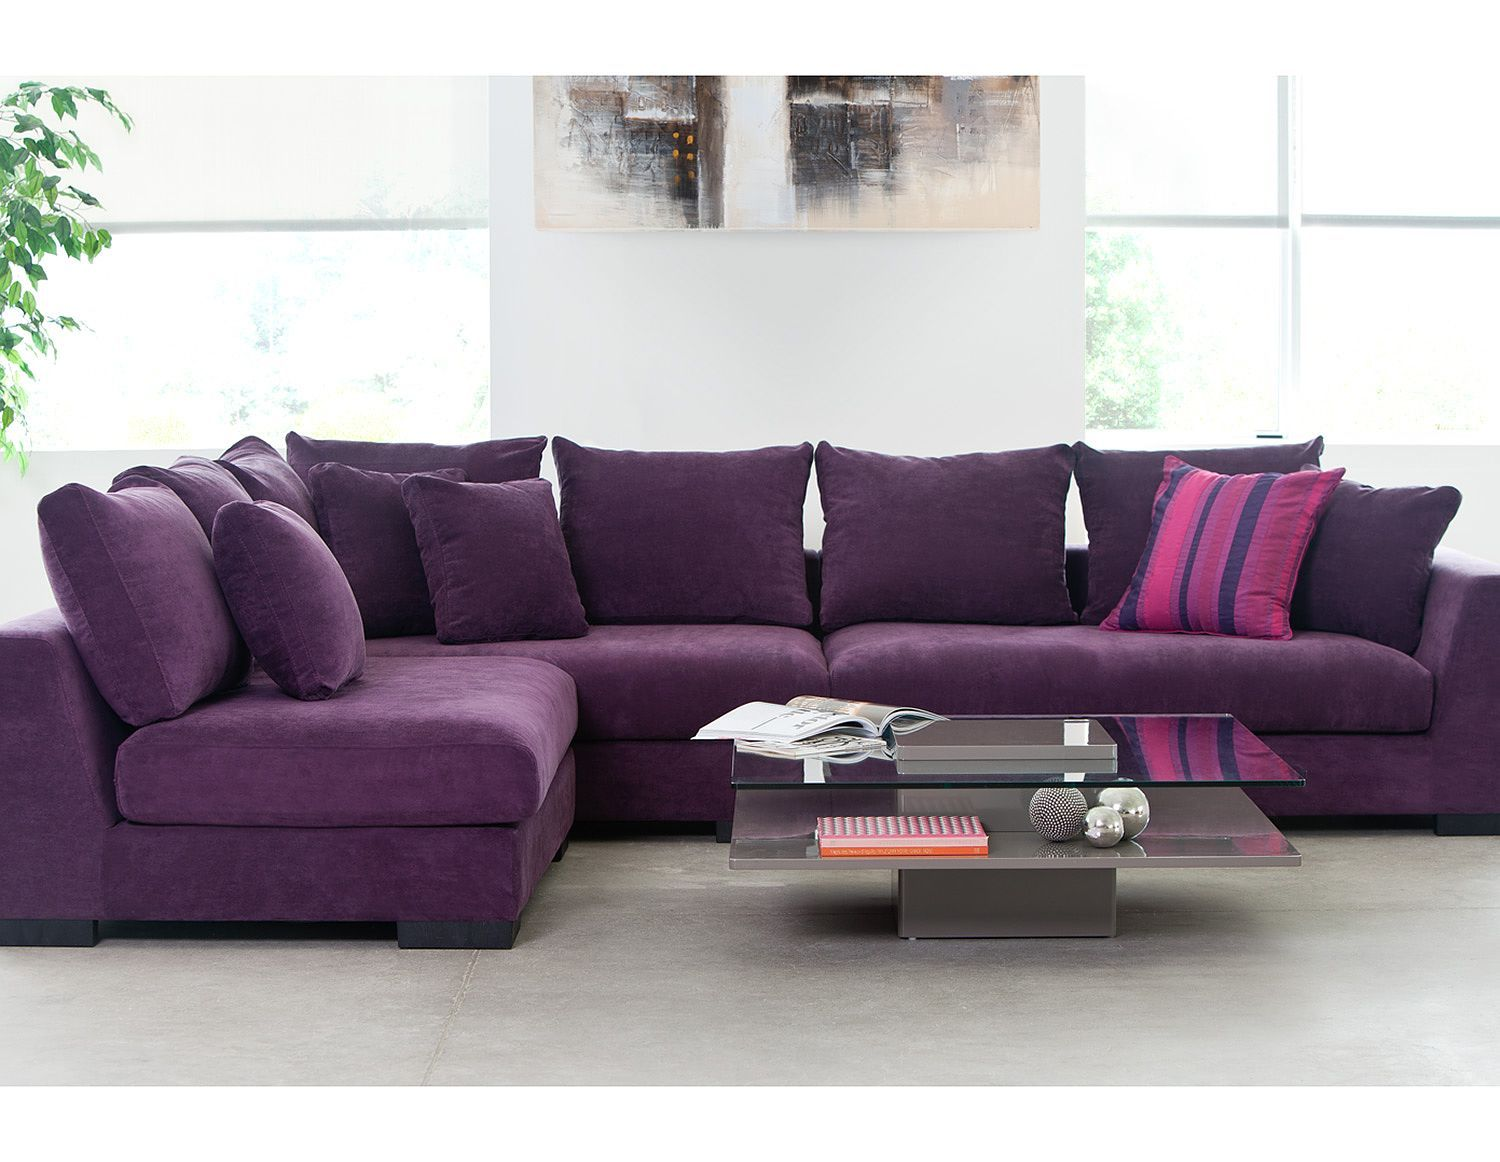 Cool Purple Couch Set Unique Purple Couch Set 26 On Office Sofa Ideas With Purple Couch Set Htt Purple Living Room Purple Living Room Furniture Purple Sofa